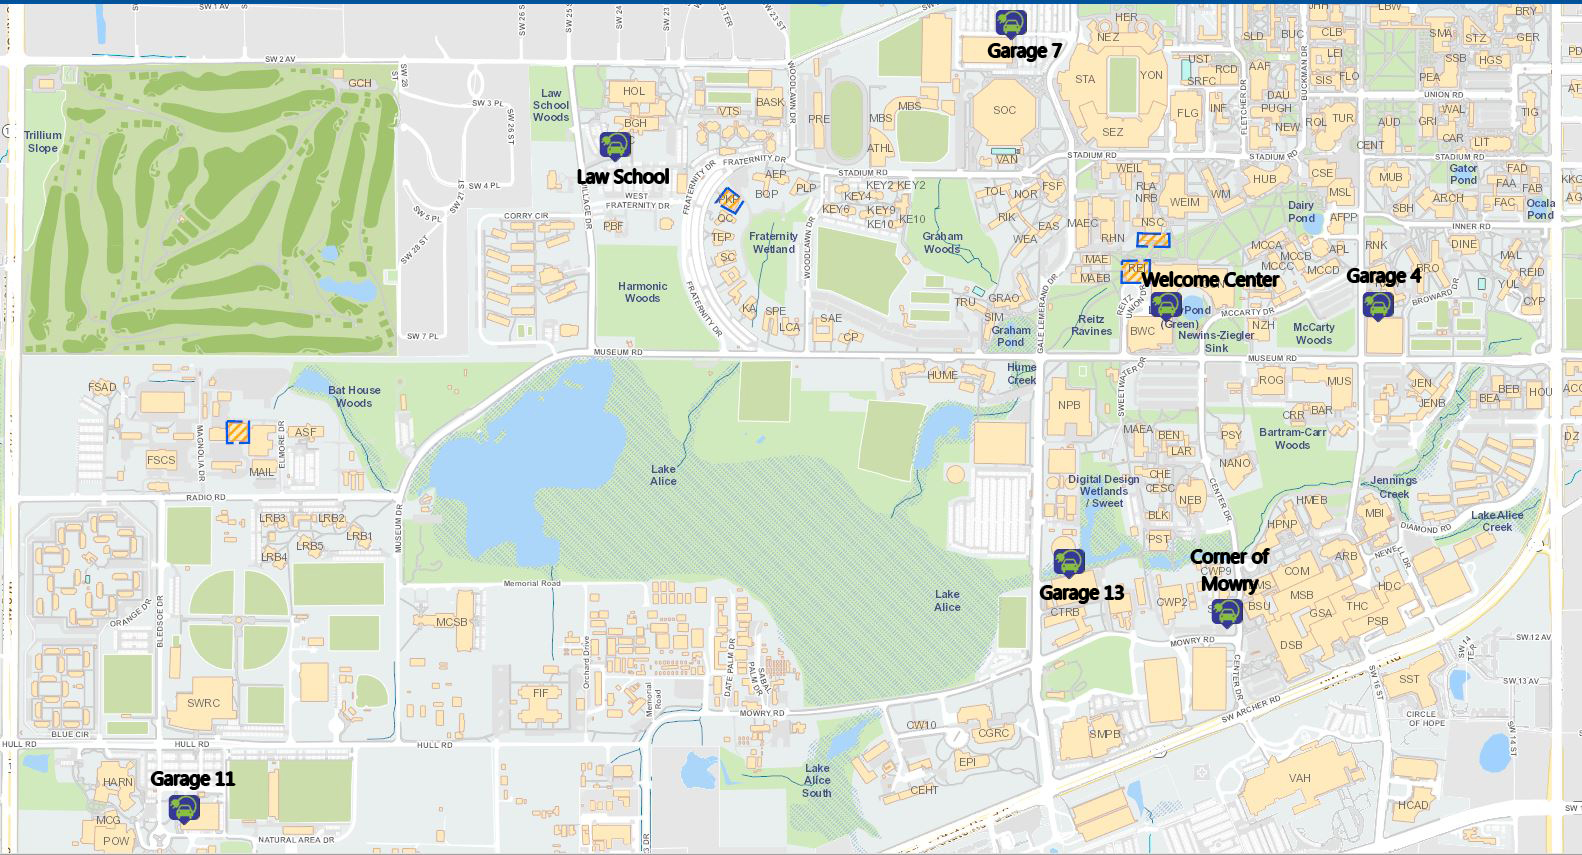 Electric Vehicle Charging Stations Map - Transportation And Parking - Electric Car Charging Stations Map Florida